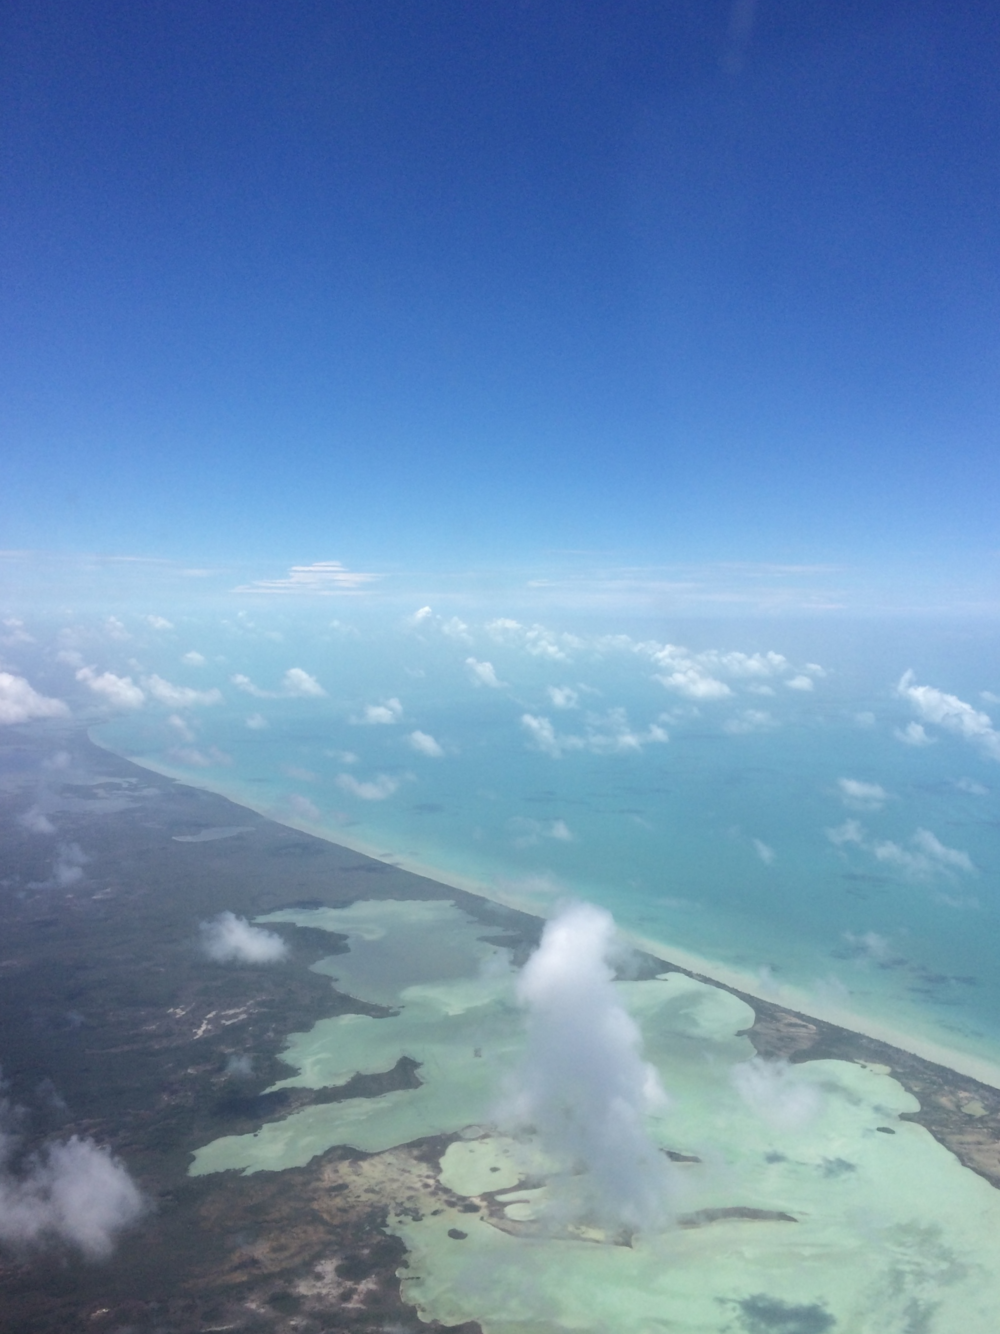 This is from our flight back from Belize last summer. Our next trip takes us to Mexico, and I'm pretty psyched, I cannot wait for more of these crystal clear blue waters.